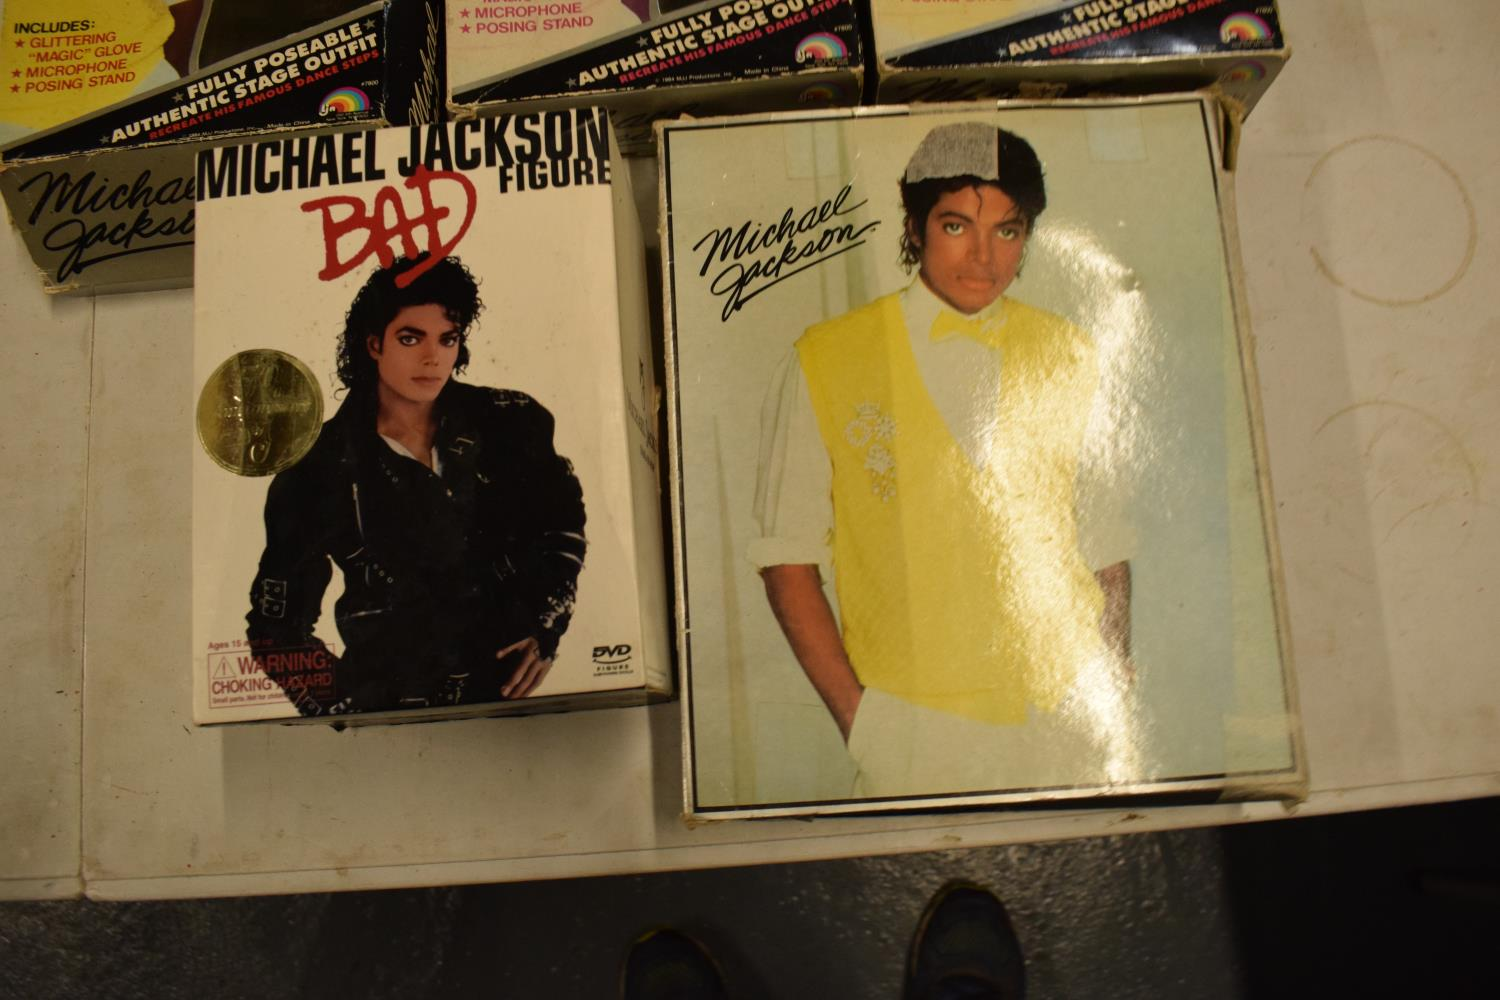 A collection Michael Jackson figures and toys to include 'BAD' figure, electronic microphone and - Image 3 of 9